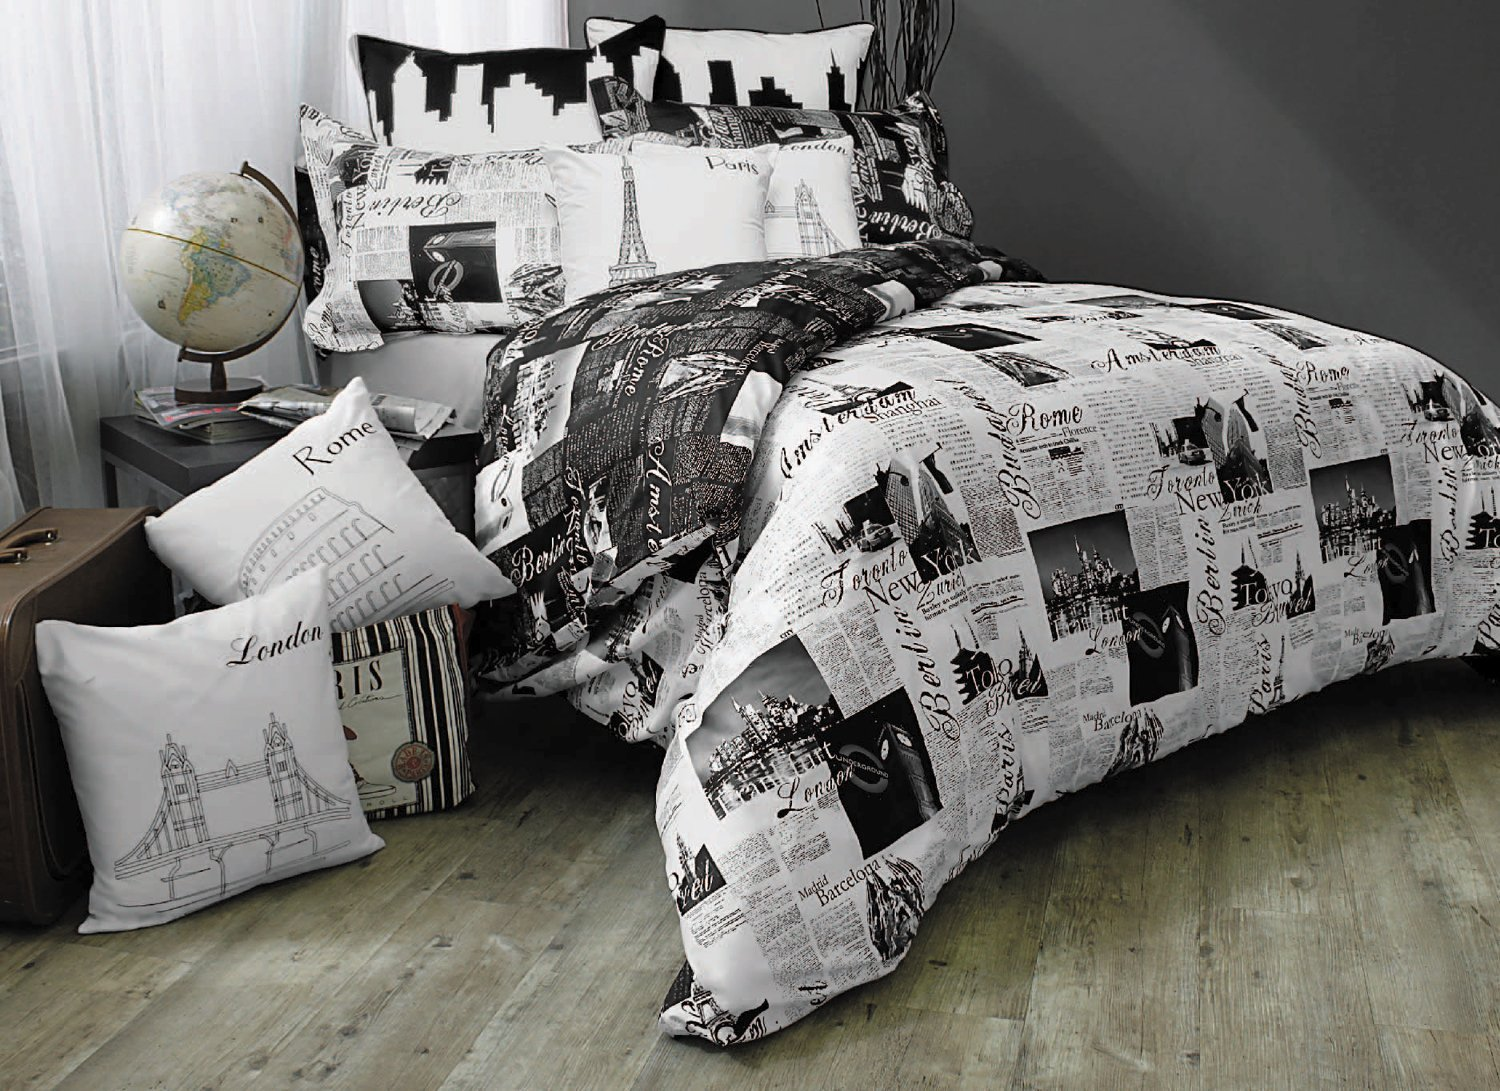 total fab paris london new york bedding a world of big city dreams